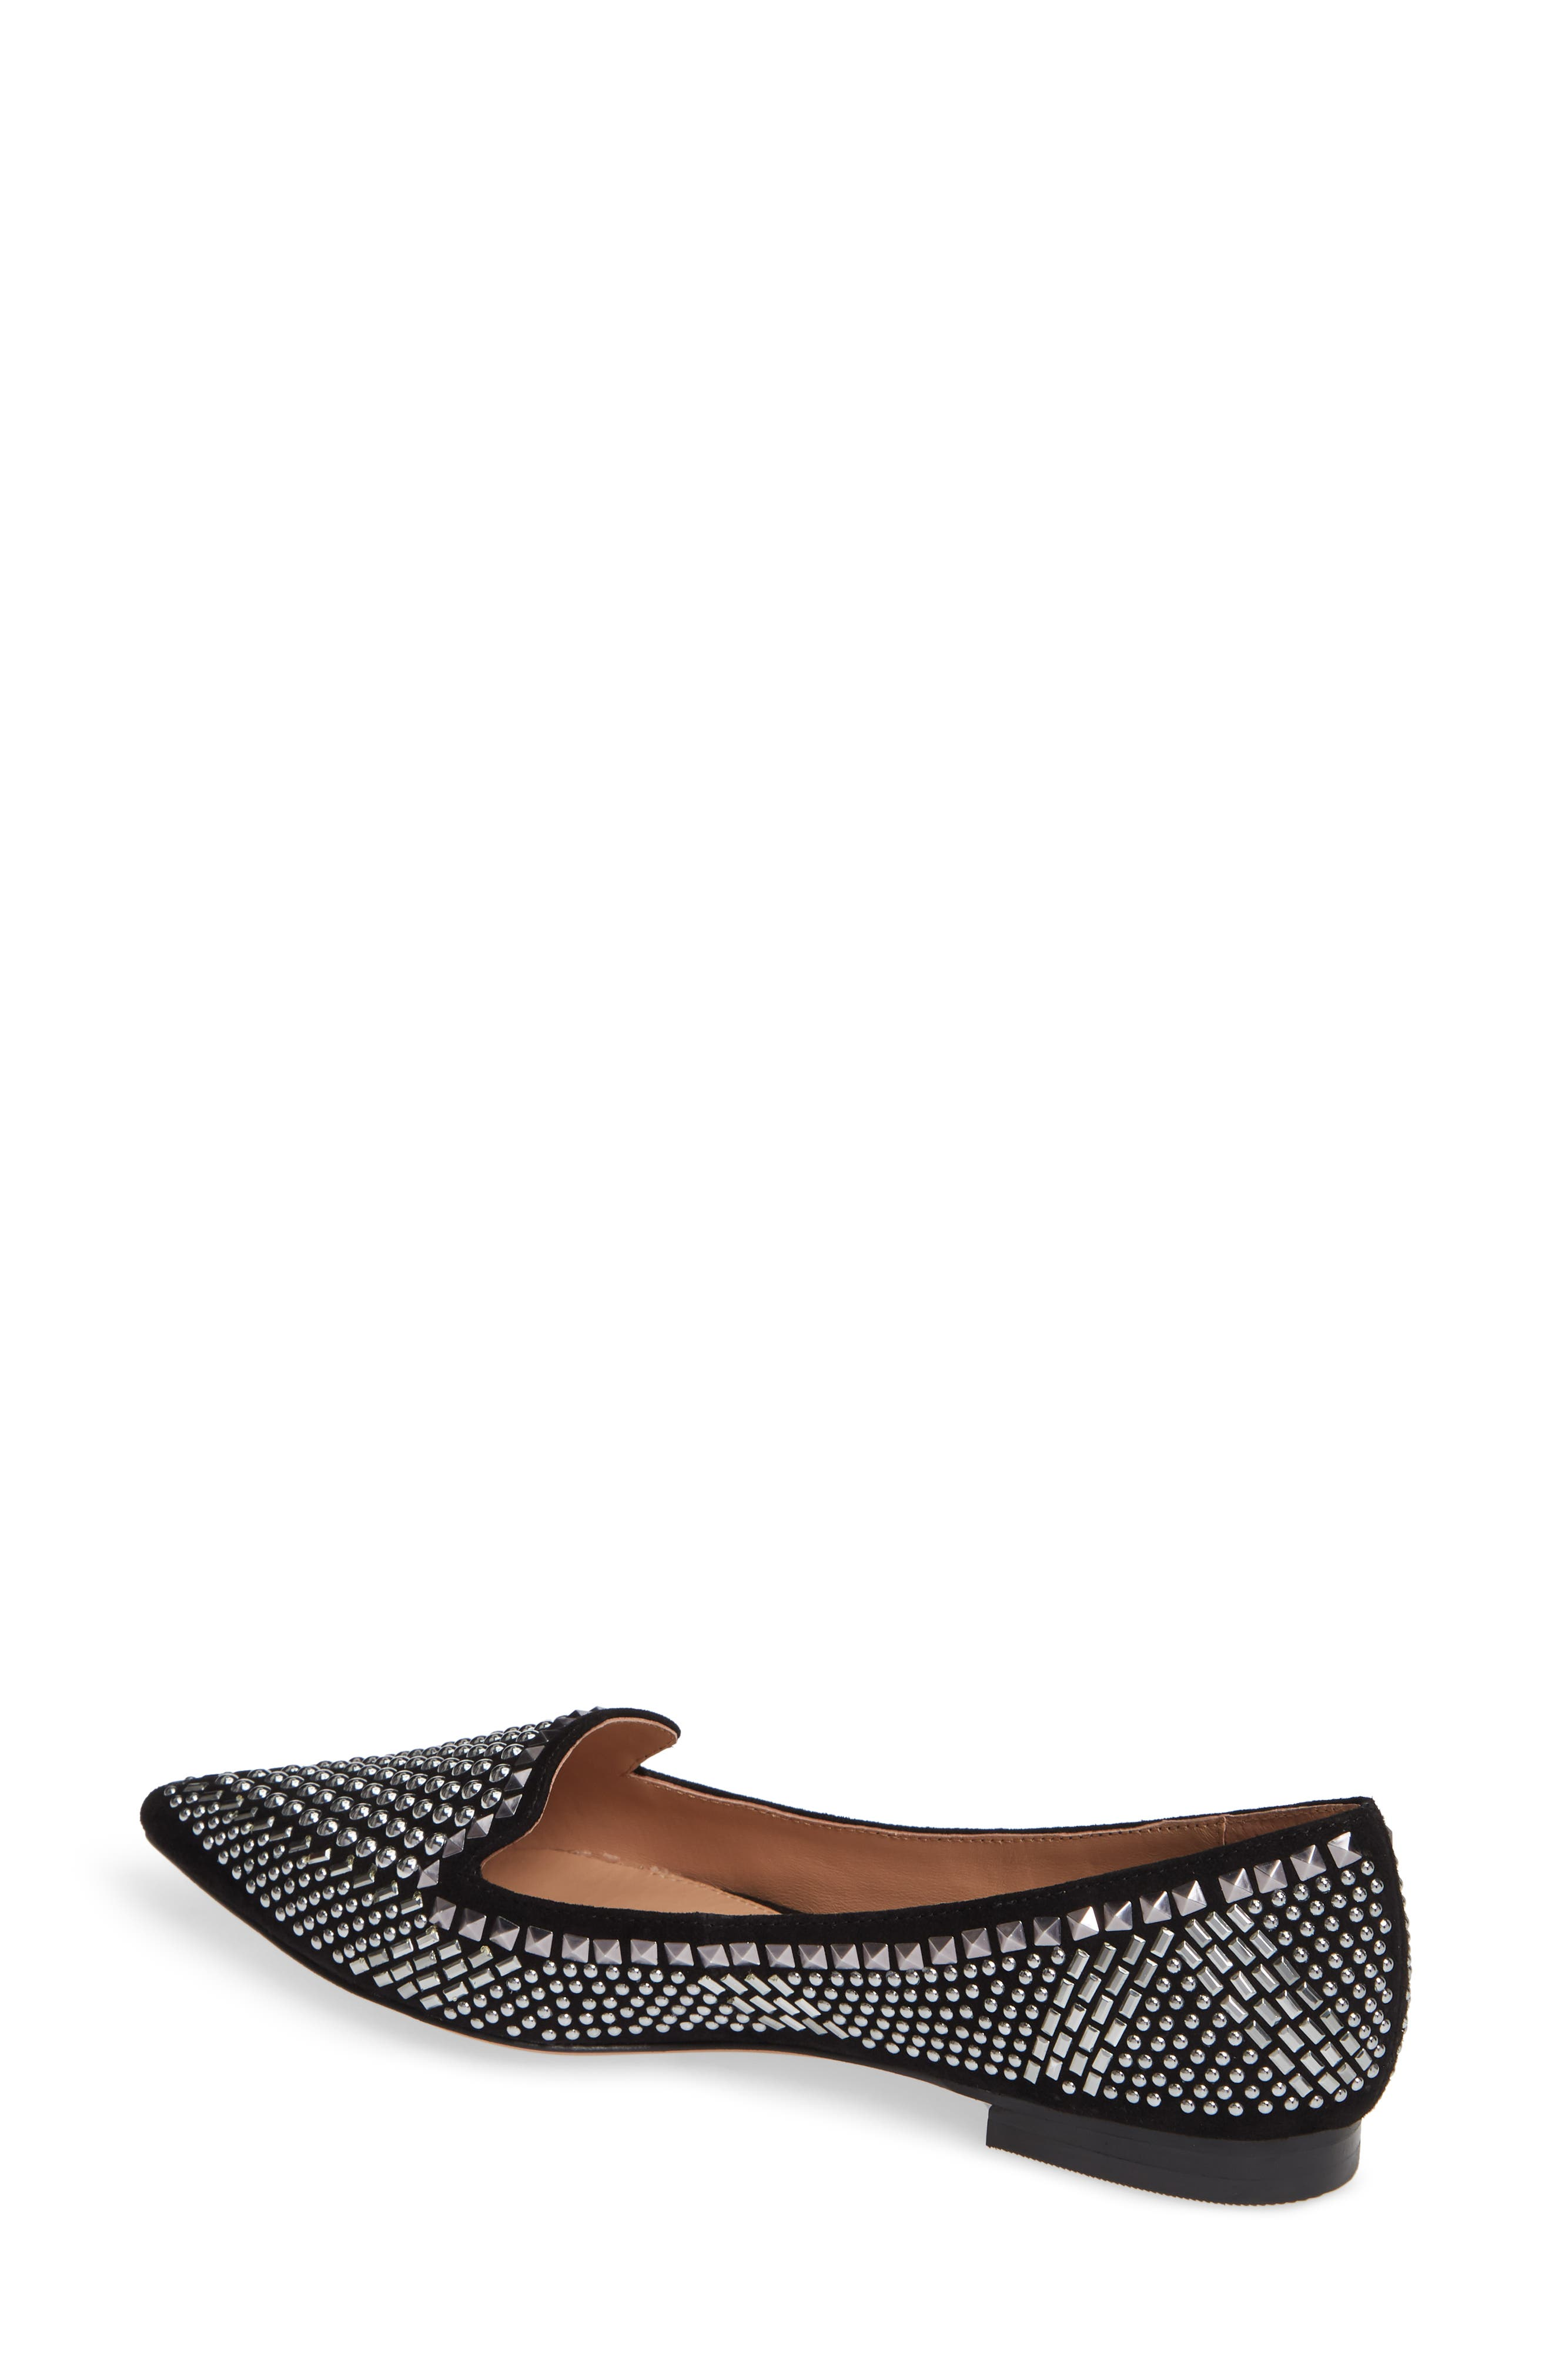 LINEA PAOLO, Portia Studded Loafer, Alternate thumbnail 2, color, BLACK SUEDE